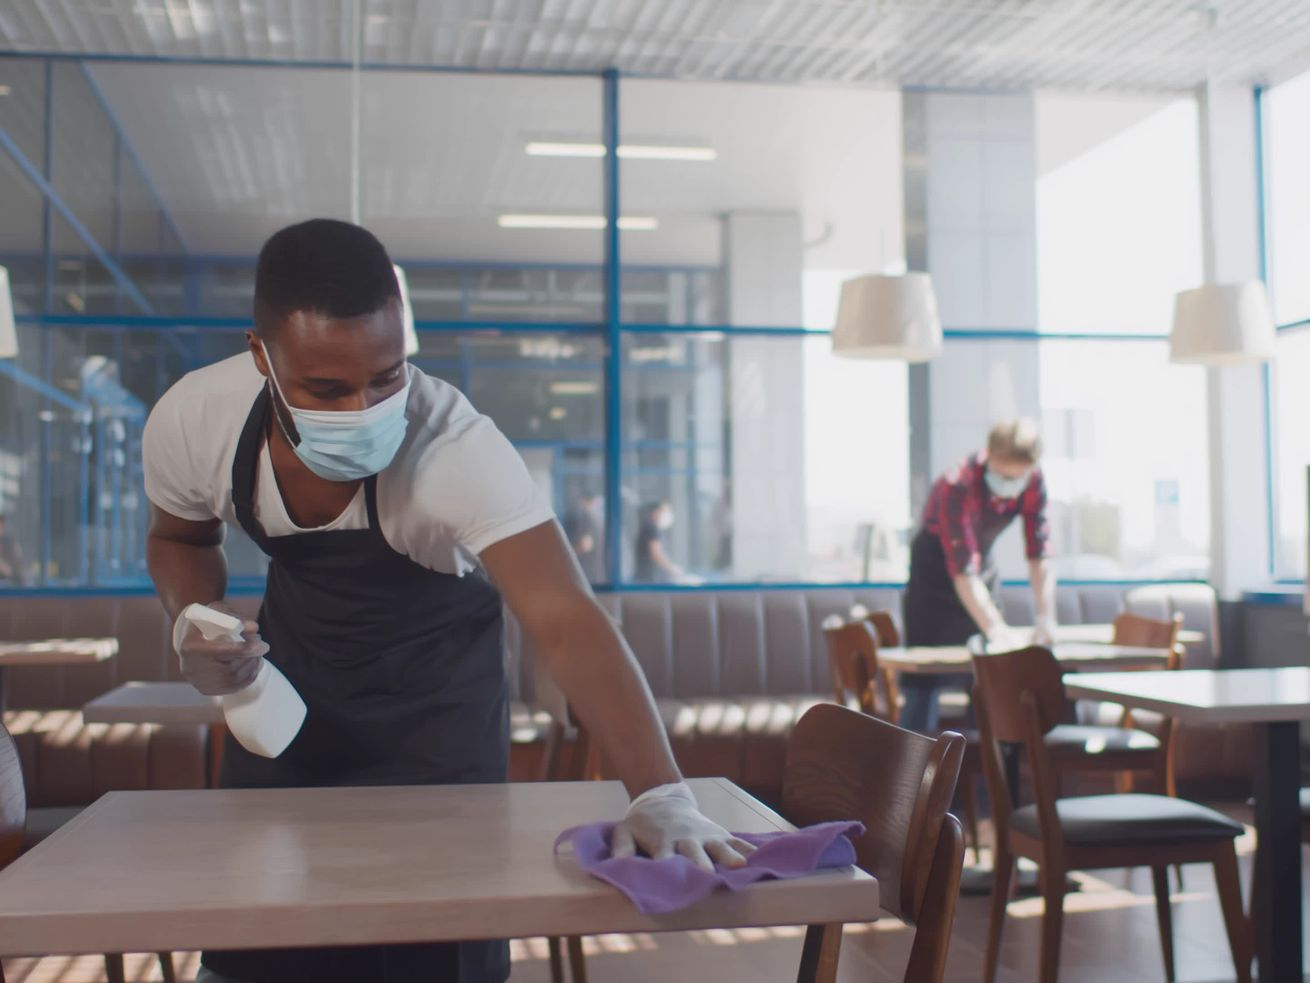 Two masked, gloved restaurant workers clean tables inside an empty restaurant dining room.